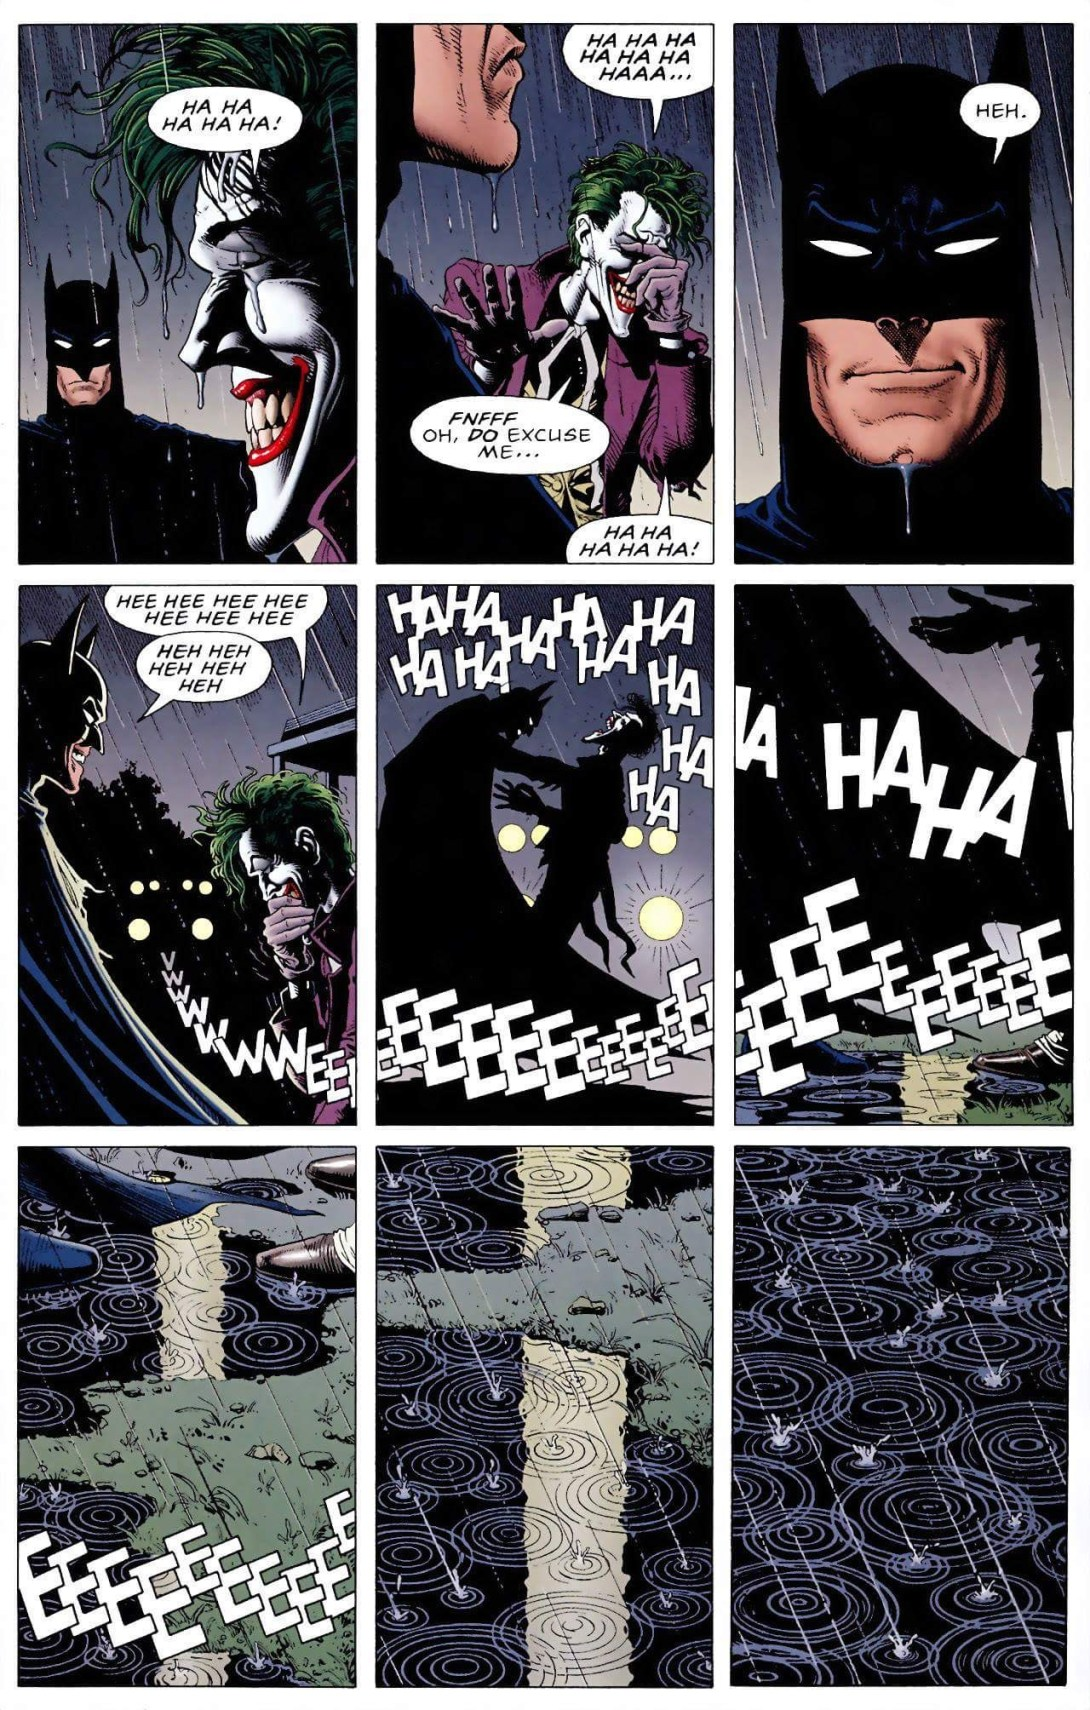 The ending page of the 1988 comic 'The Killing Joke'